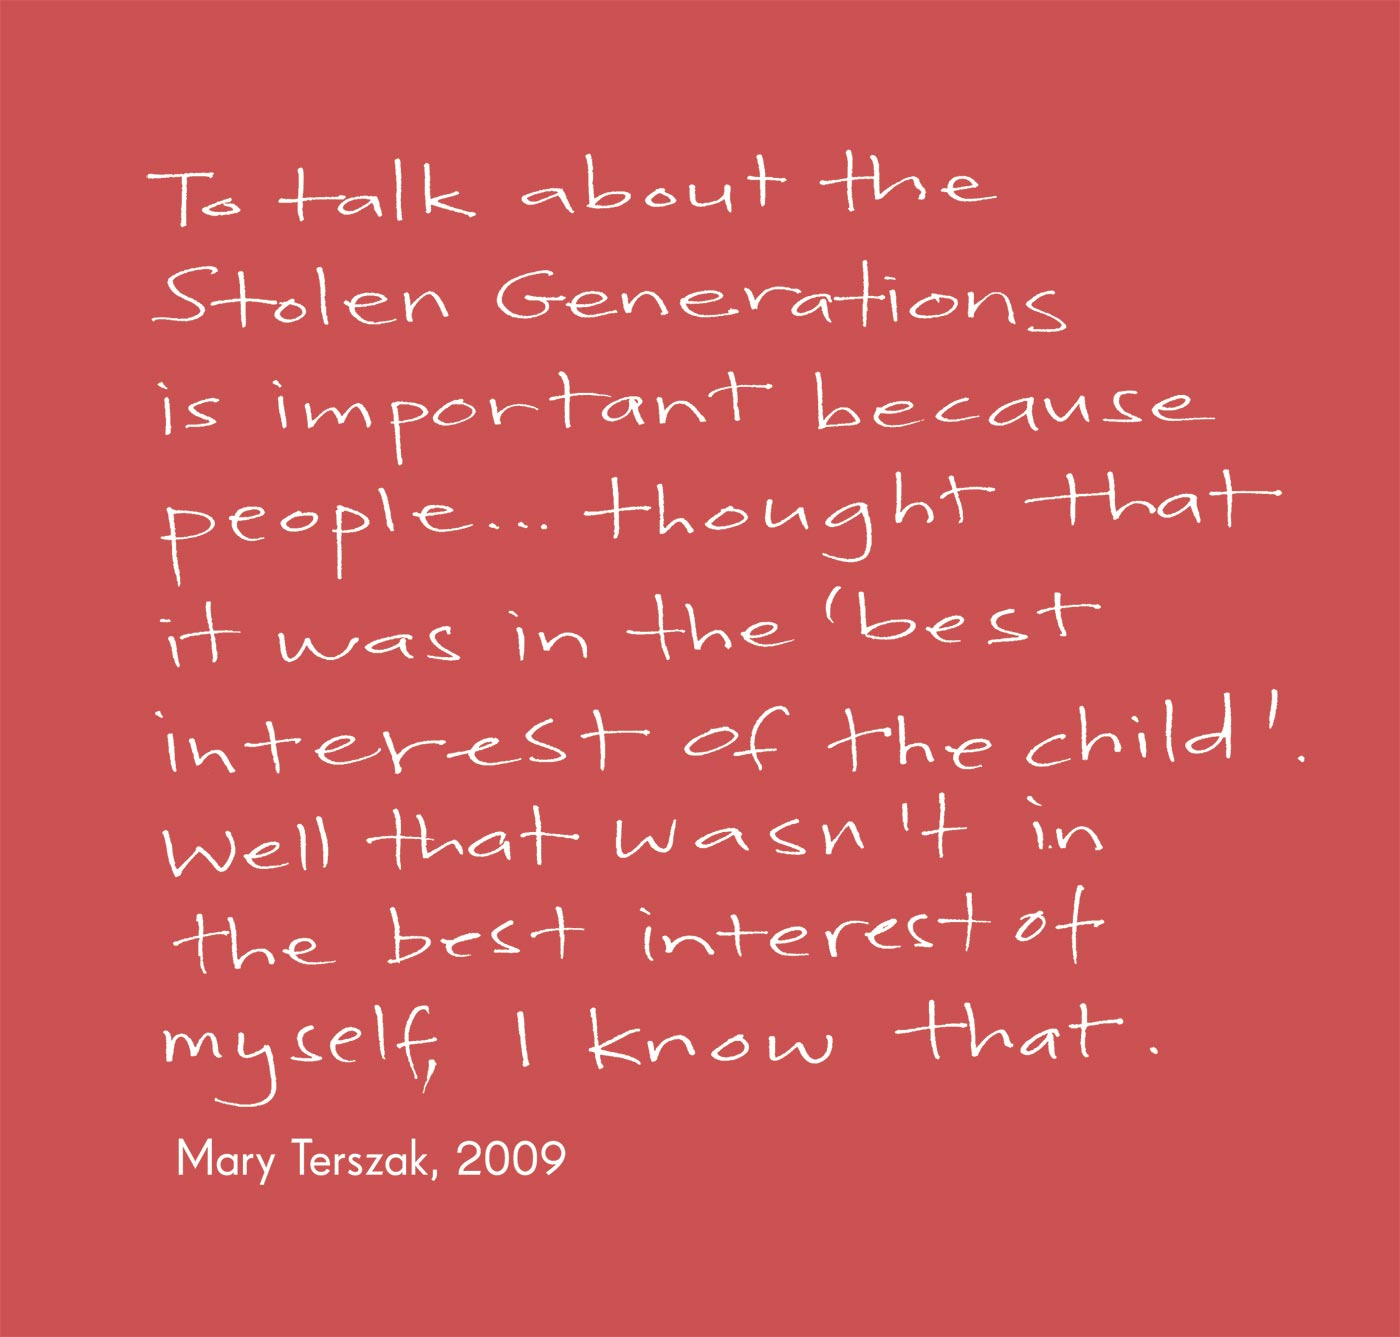 Exhibition graphic panel that reads: 'To talk about the Stolen Generations is important because people ... thought that it was in the 'best interest of the child'. Well that wasn't in the best interest of myself, I know that', attributed to 'Mary Terszak, 2009'. - click to view larger image